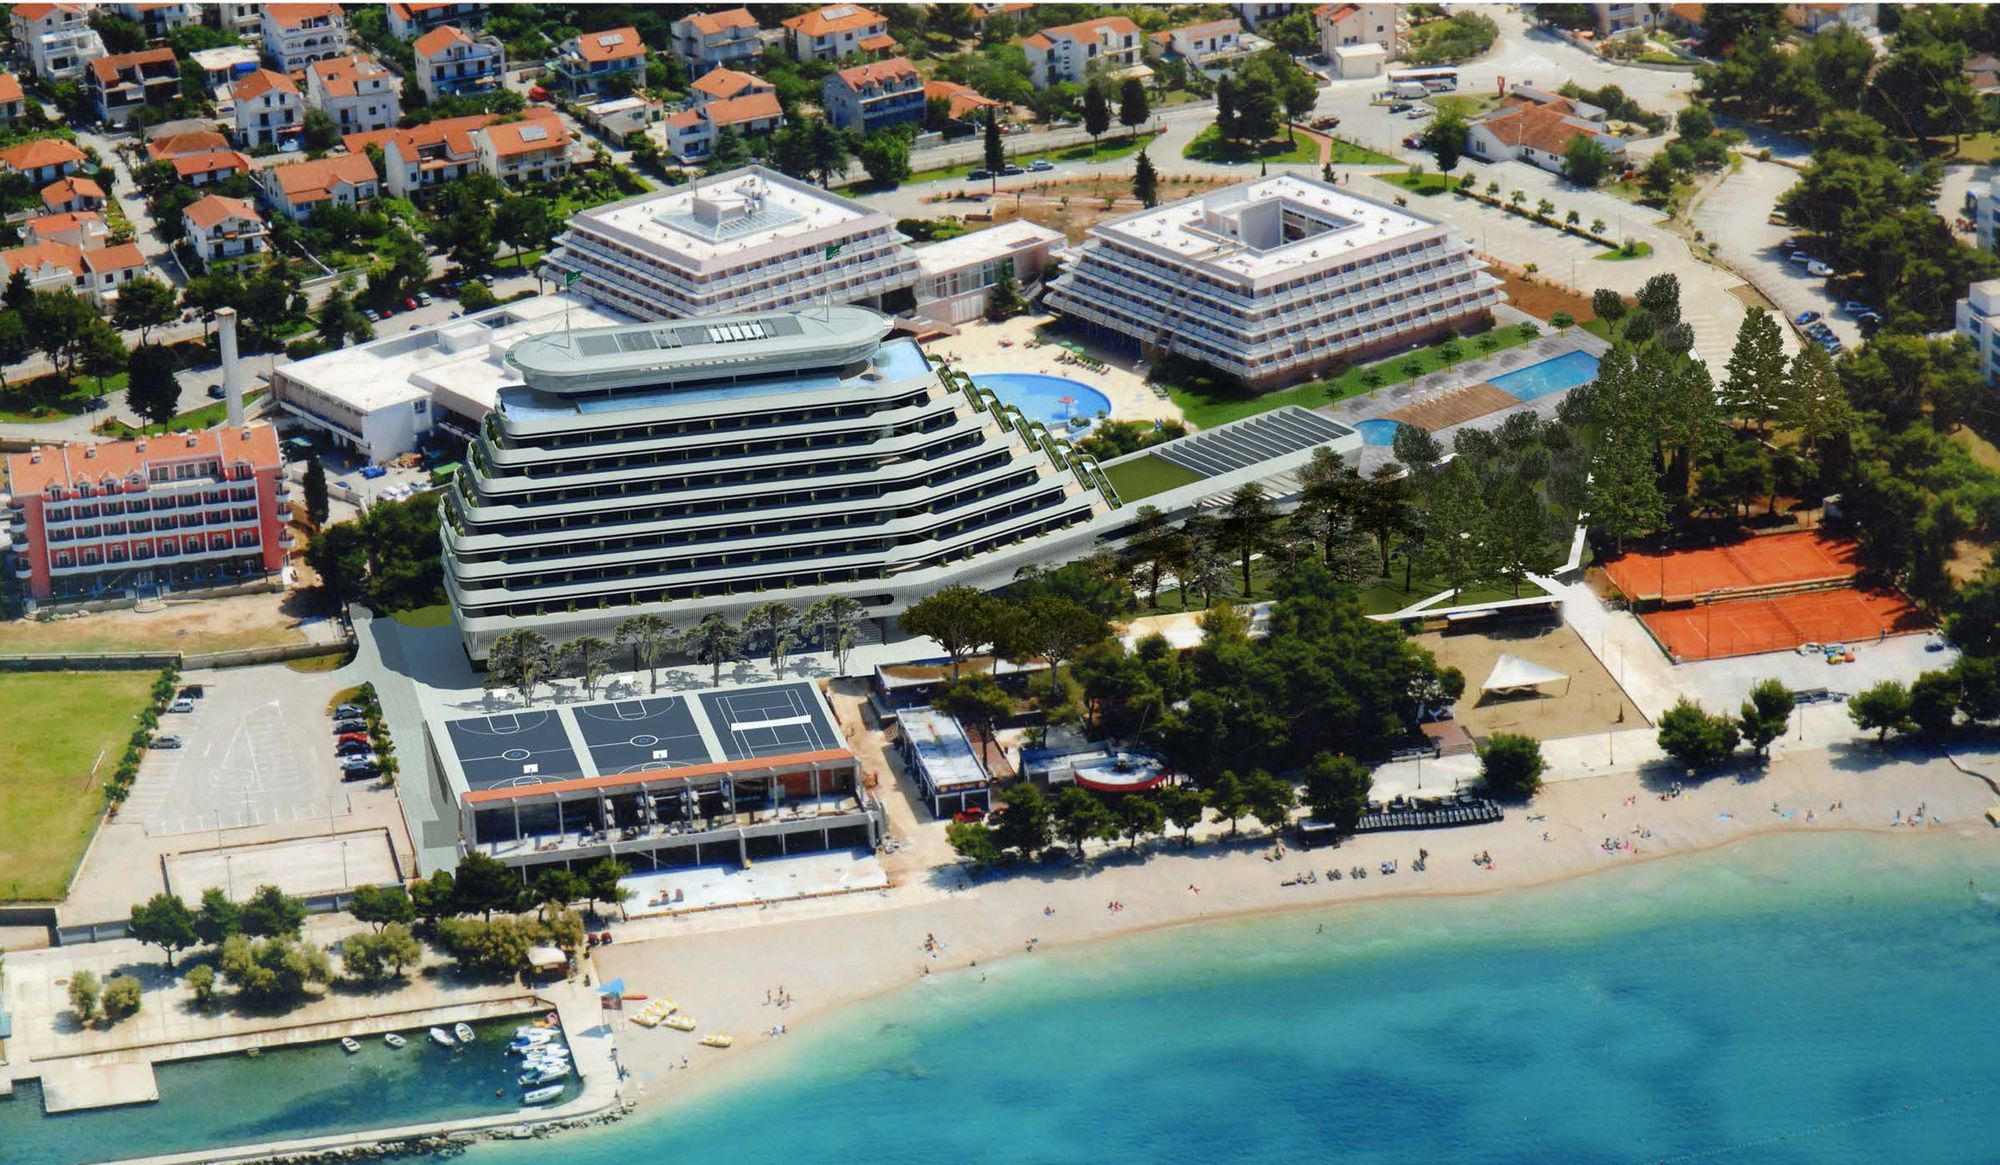 Olympia Sky to Open in Vodice in June 2017